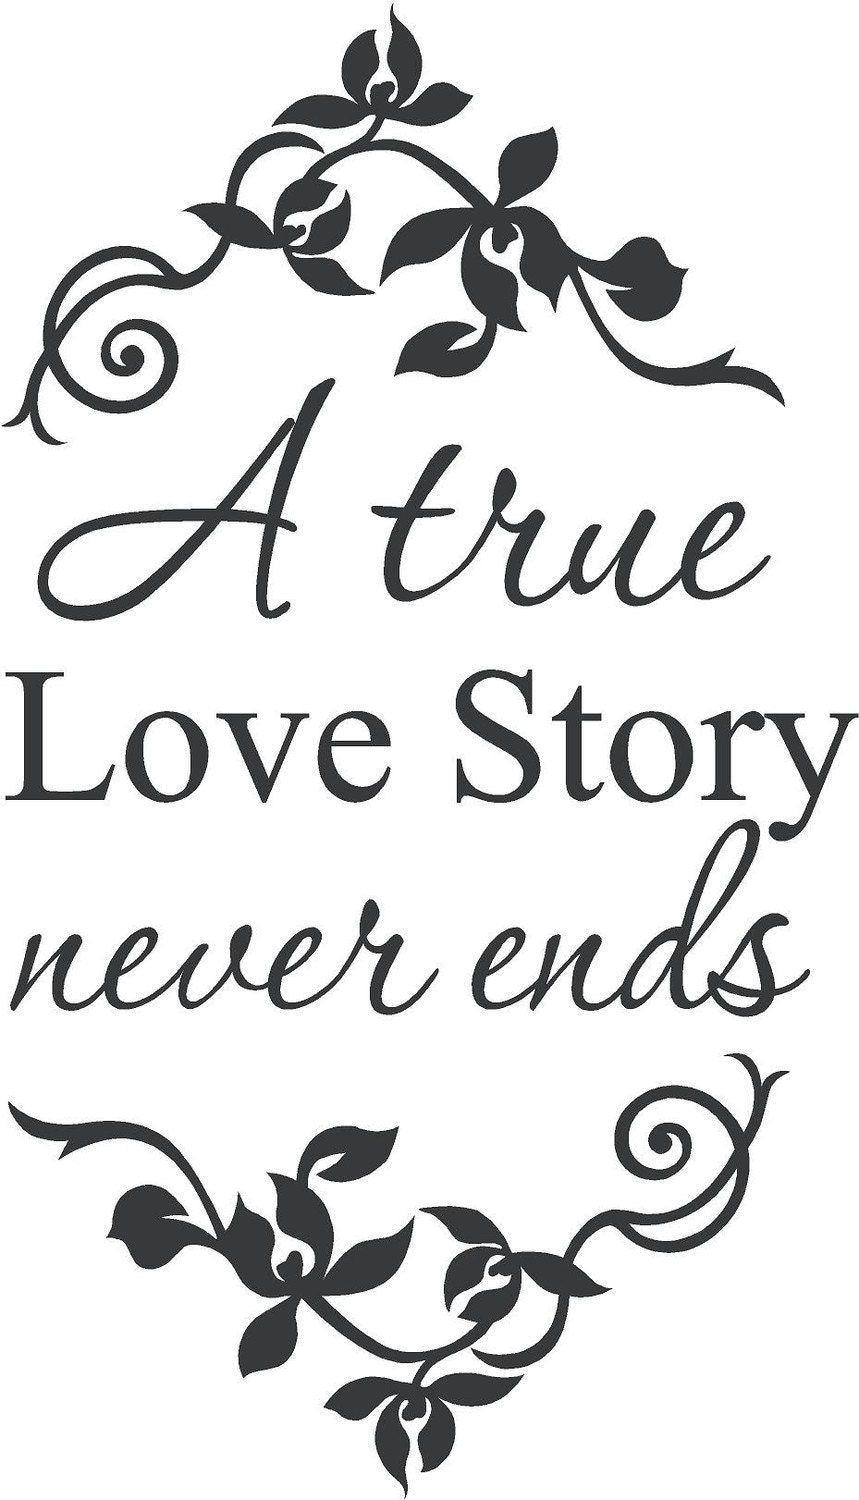 Love Story Magazine 1921 Pulp Comic Books 1939 Or Before: A True Love Story Never Ends Wall Decal Wall Words Wall Tattoo